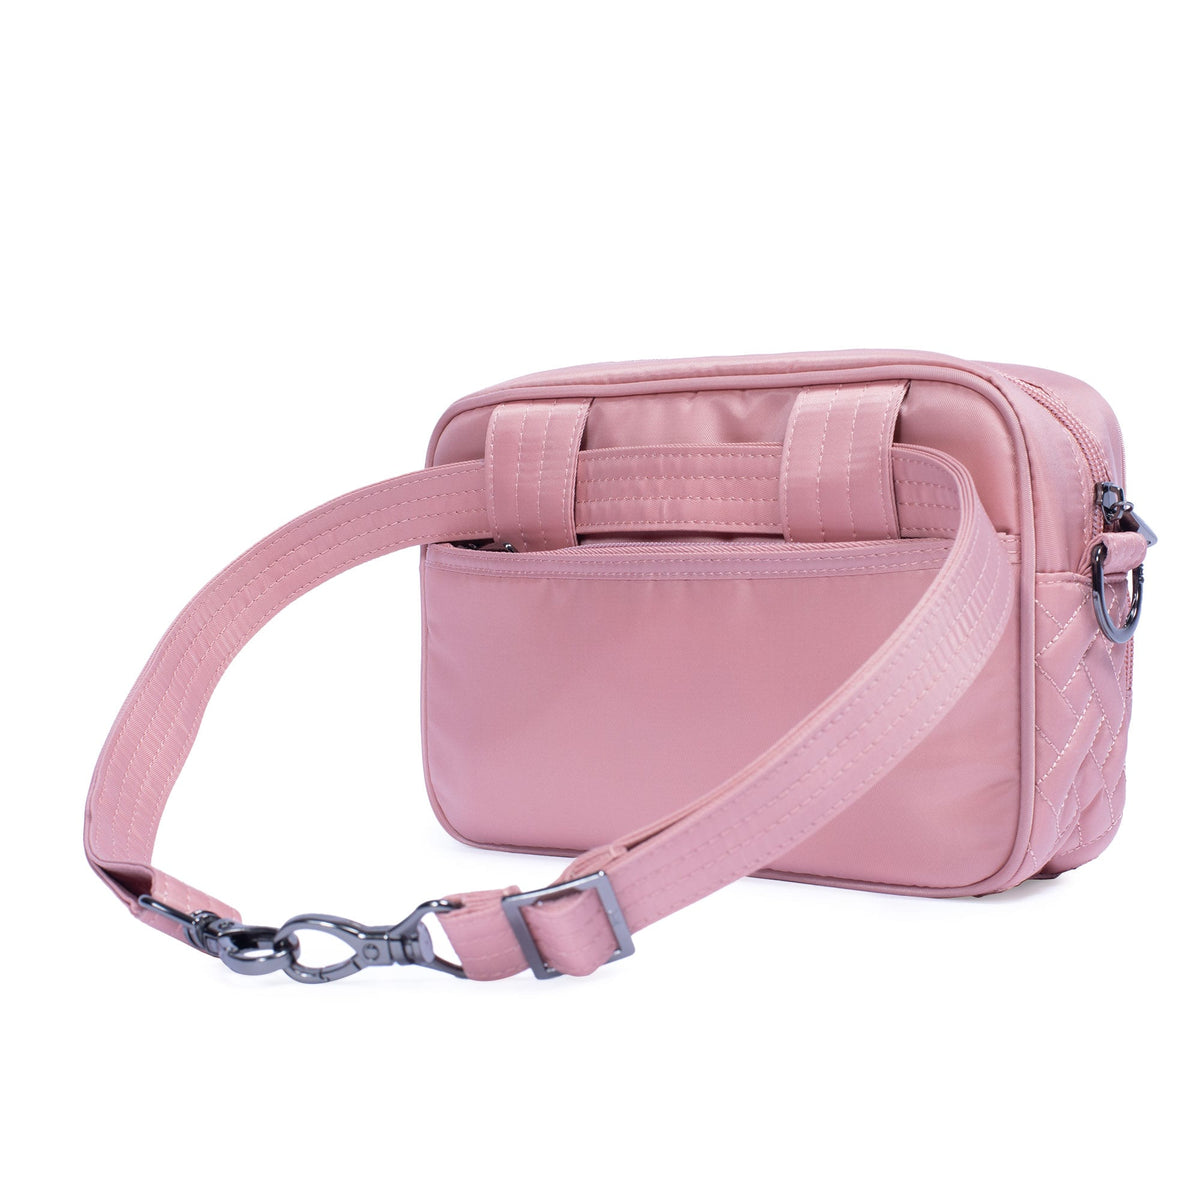 Carousel Convertible Crossbody Bag